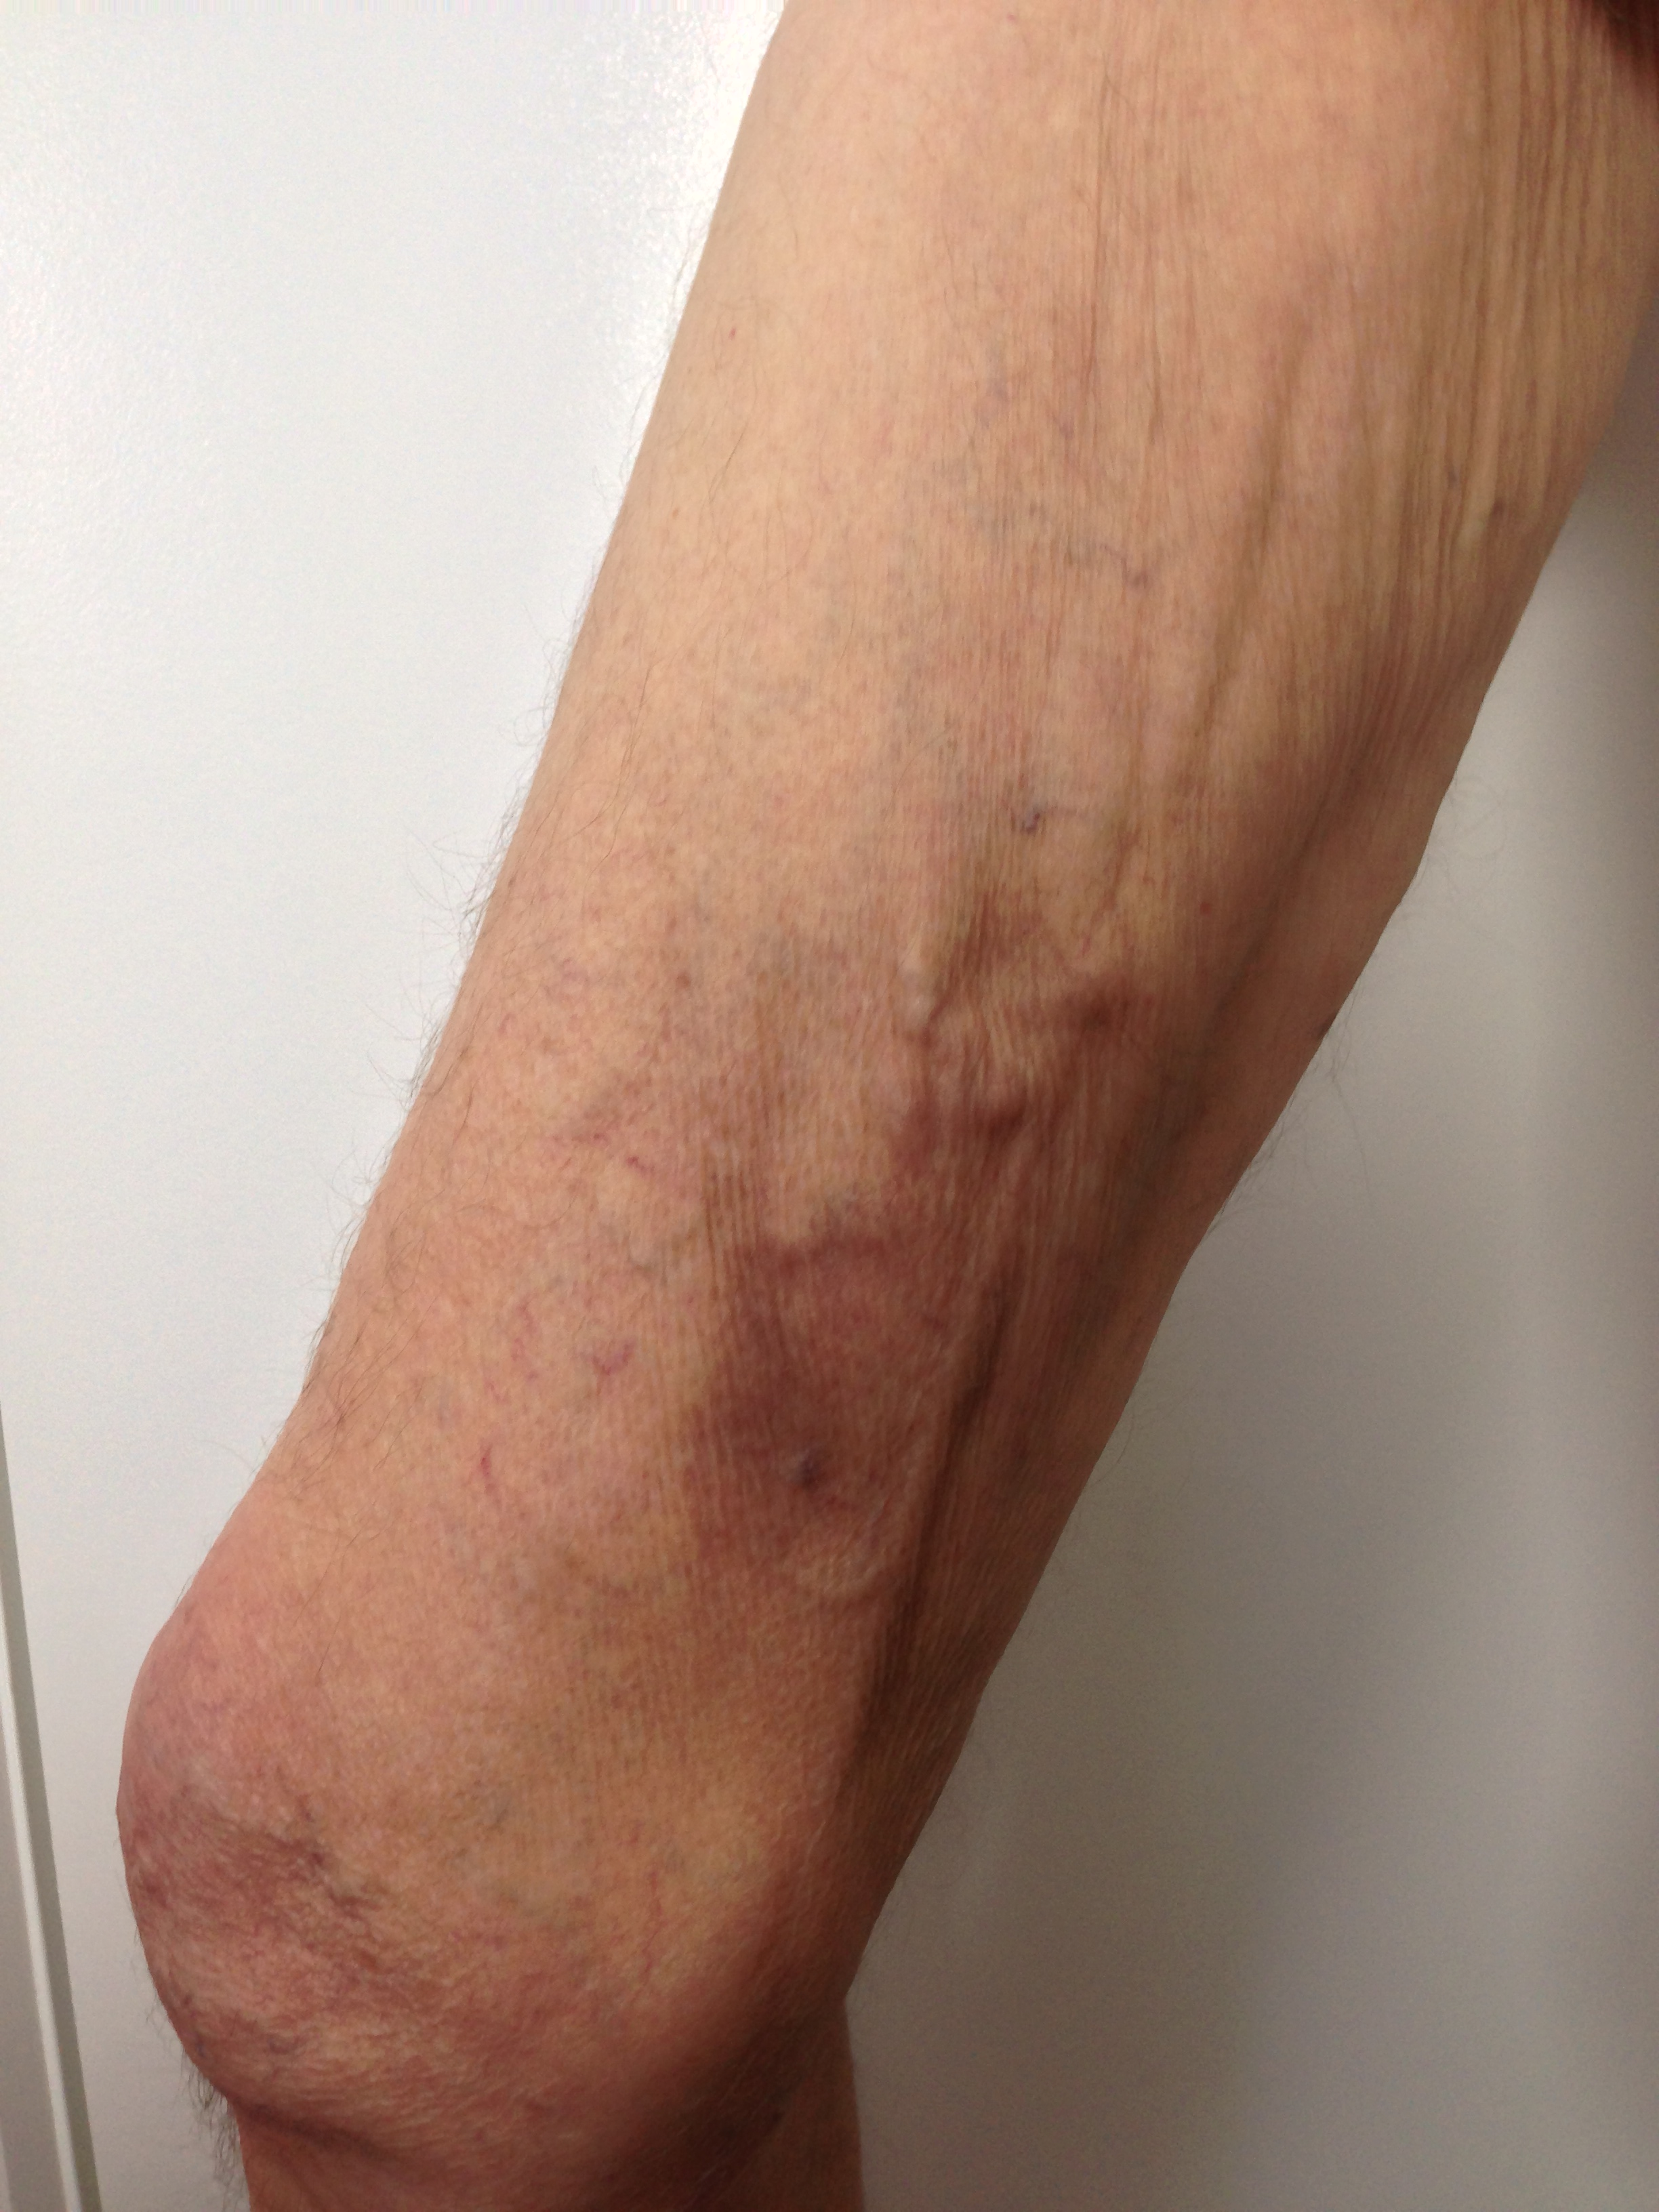 Treatment: EndoVenous Laser Ablation and Ultrasound Guided Sclerotherapy at The Leg Vein Doctor - 3 months.